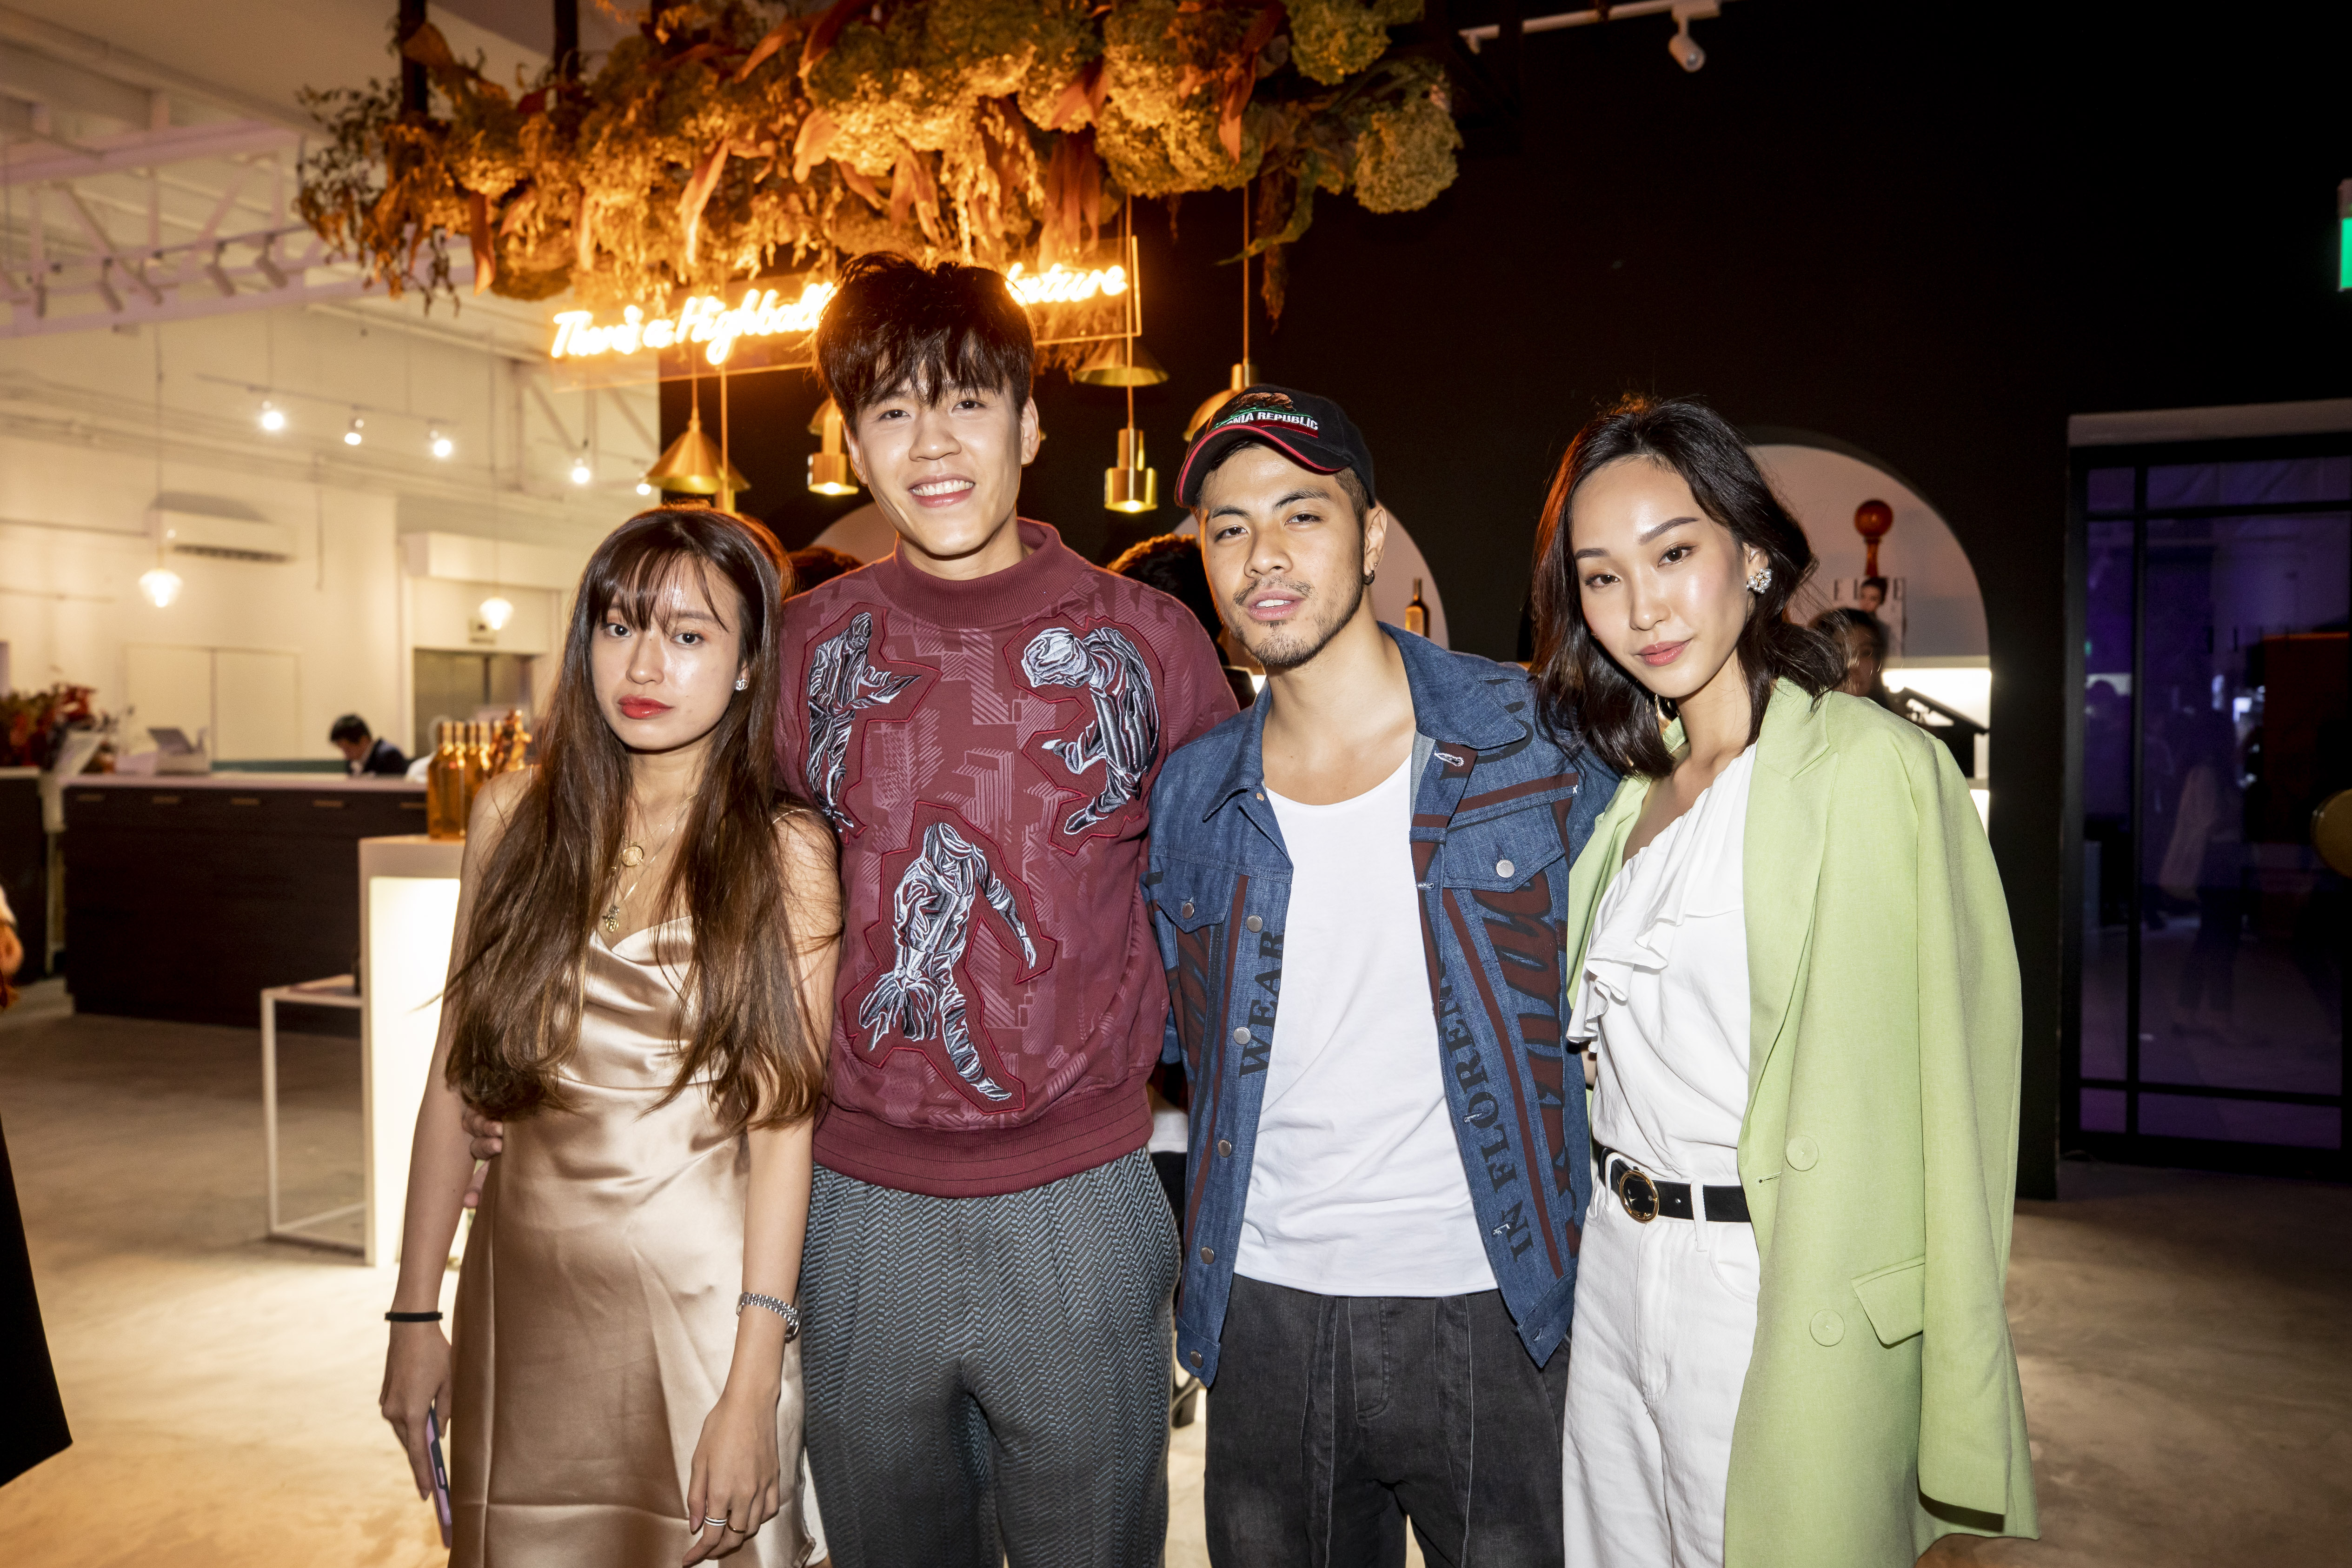 Rebecca Ten, Chase Tan, Benjamin Kheng and Constance Lau